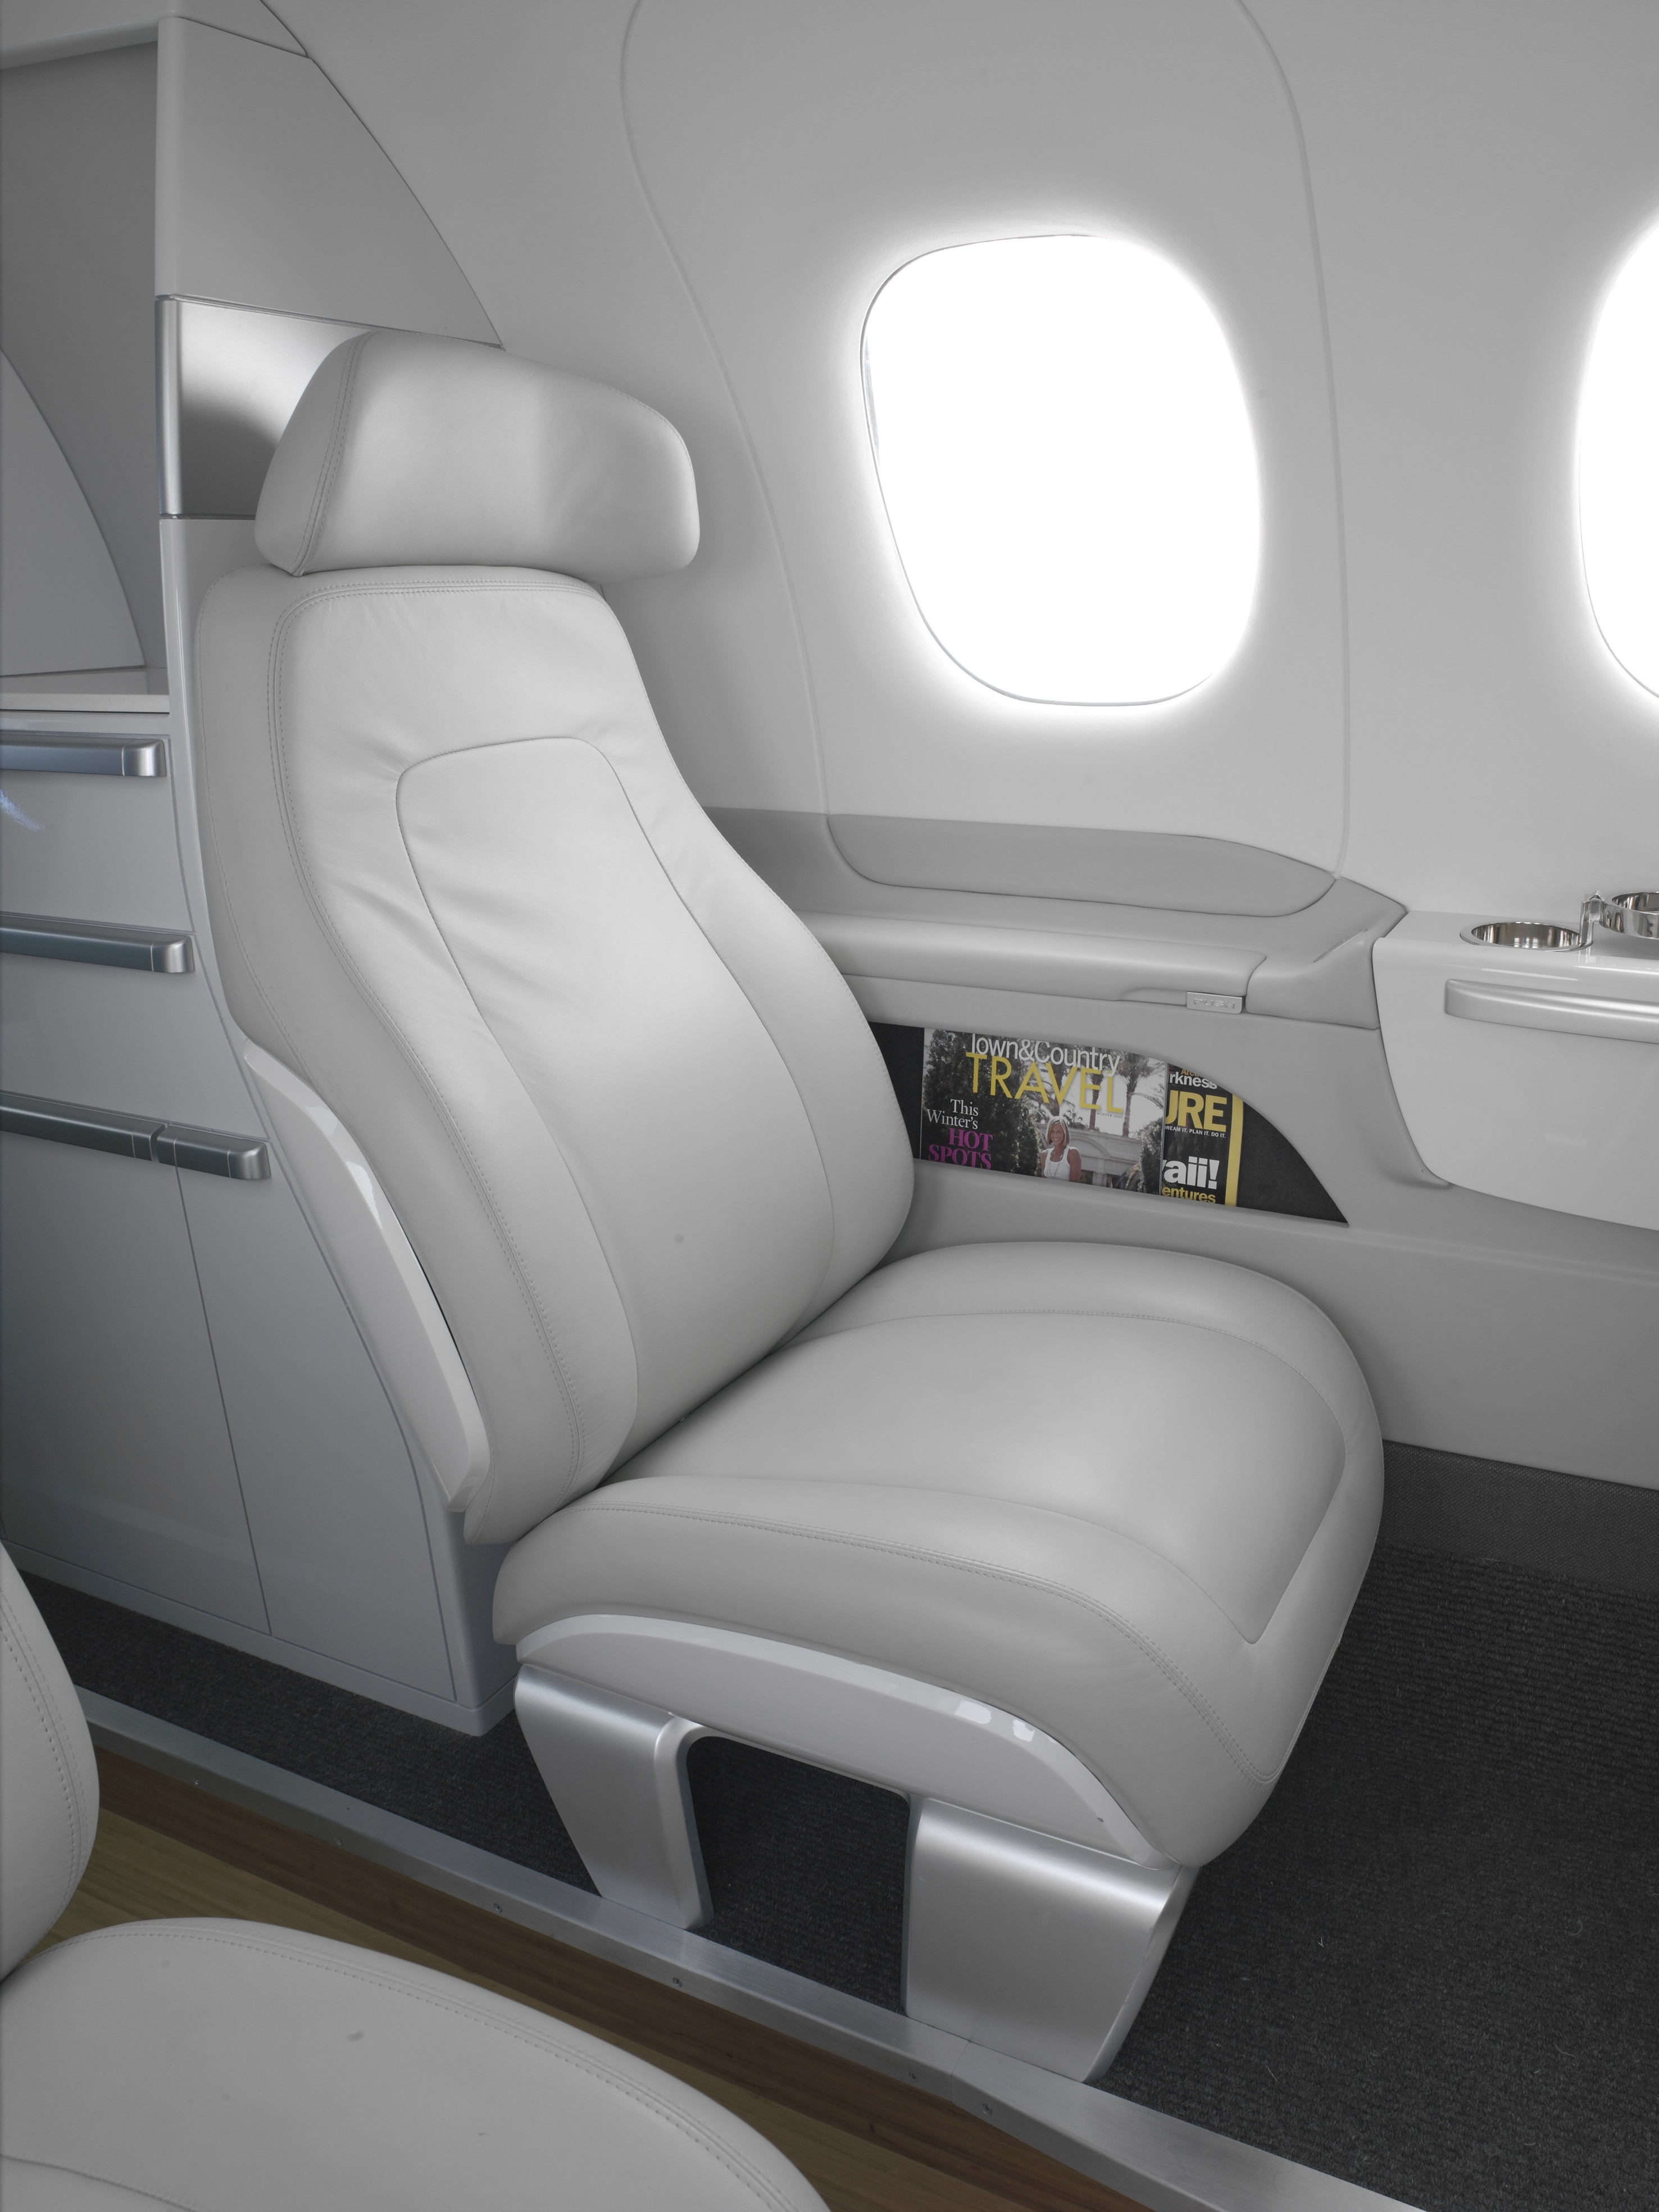 BMW designs airplane cabins and cockpits for Embraer aircrafts